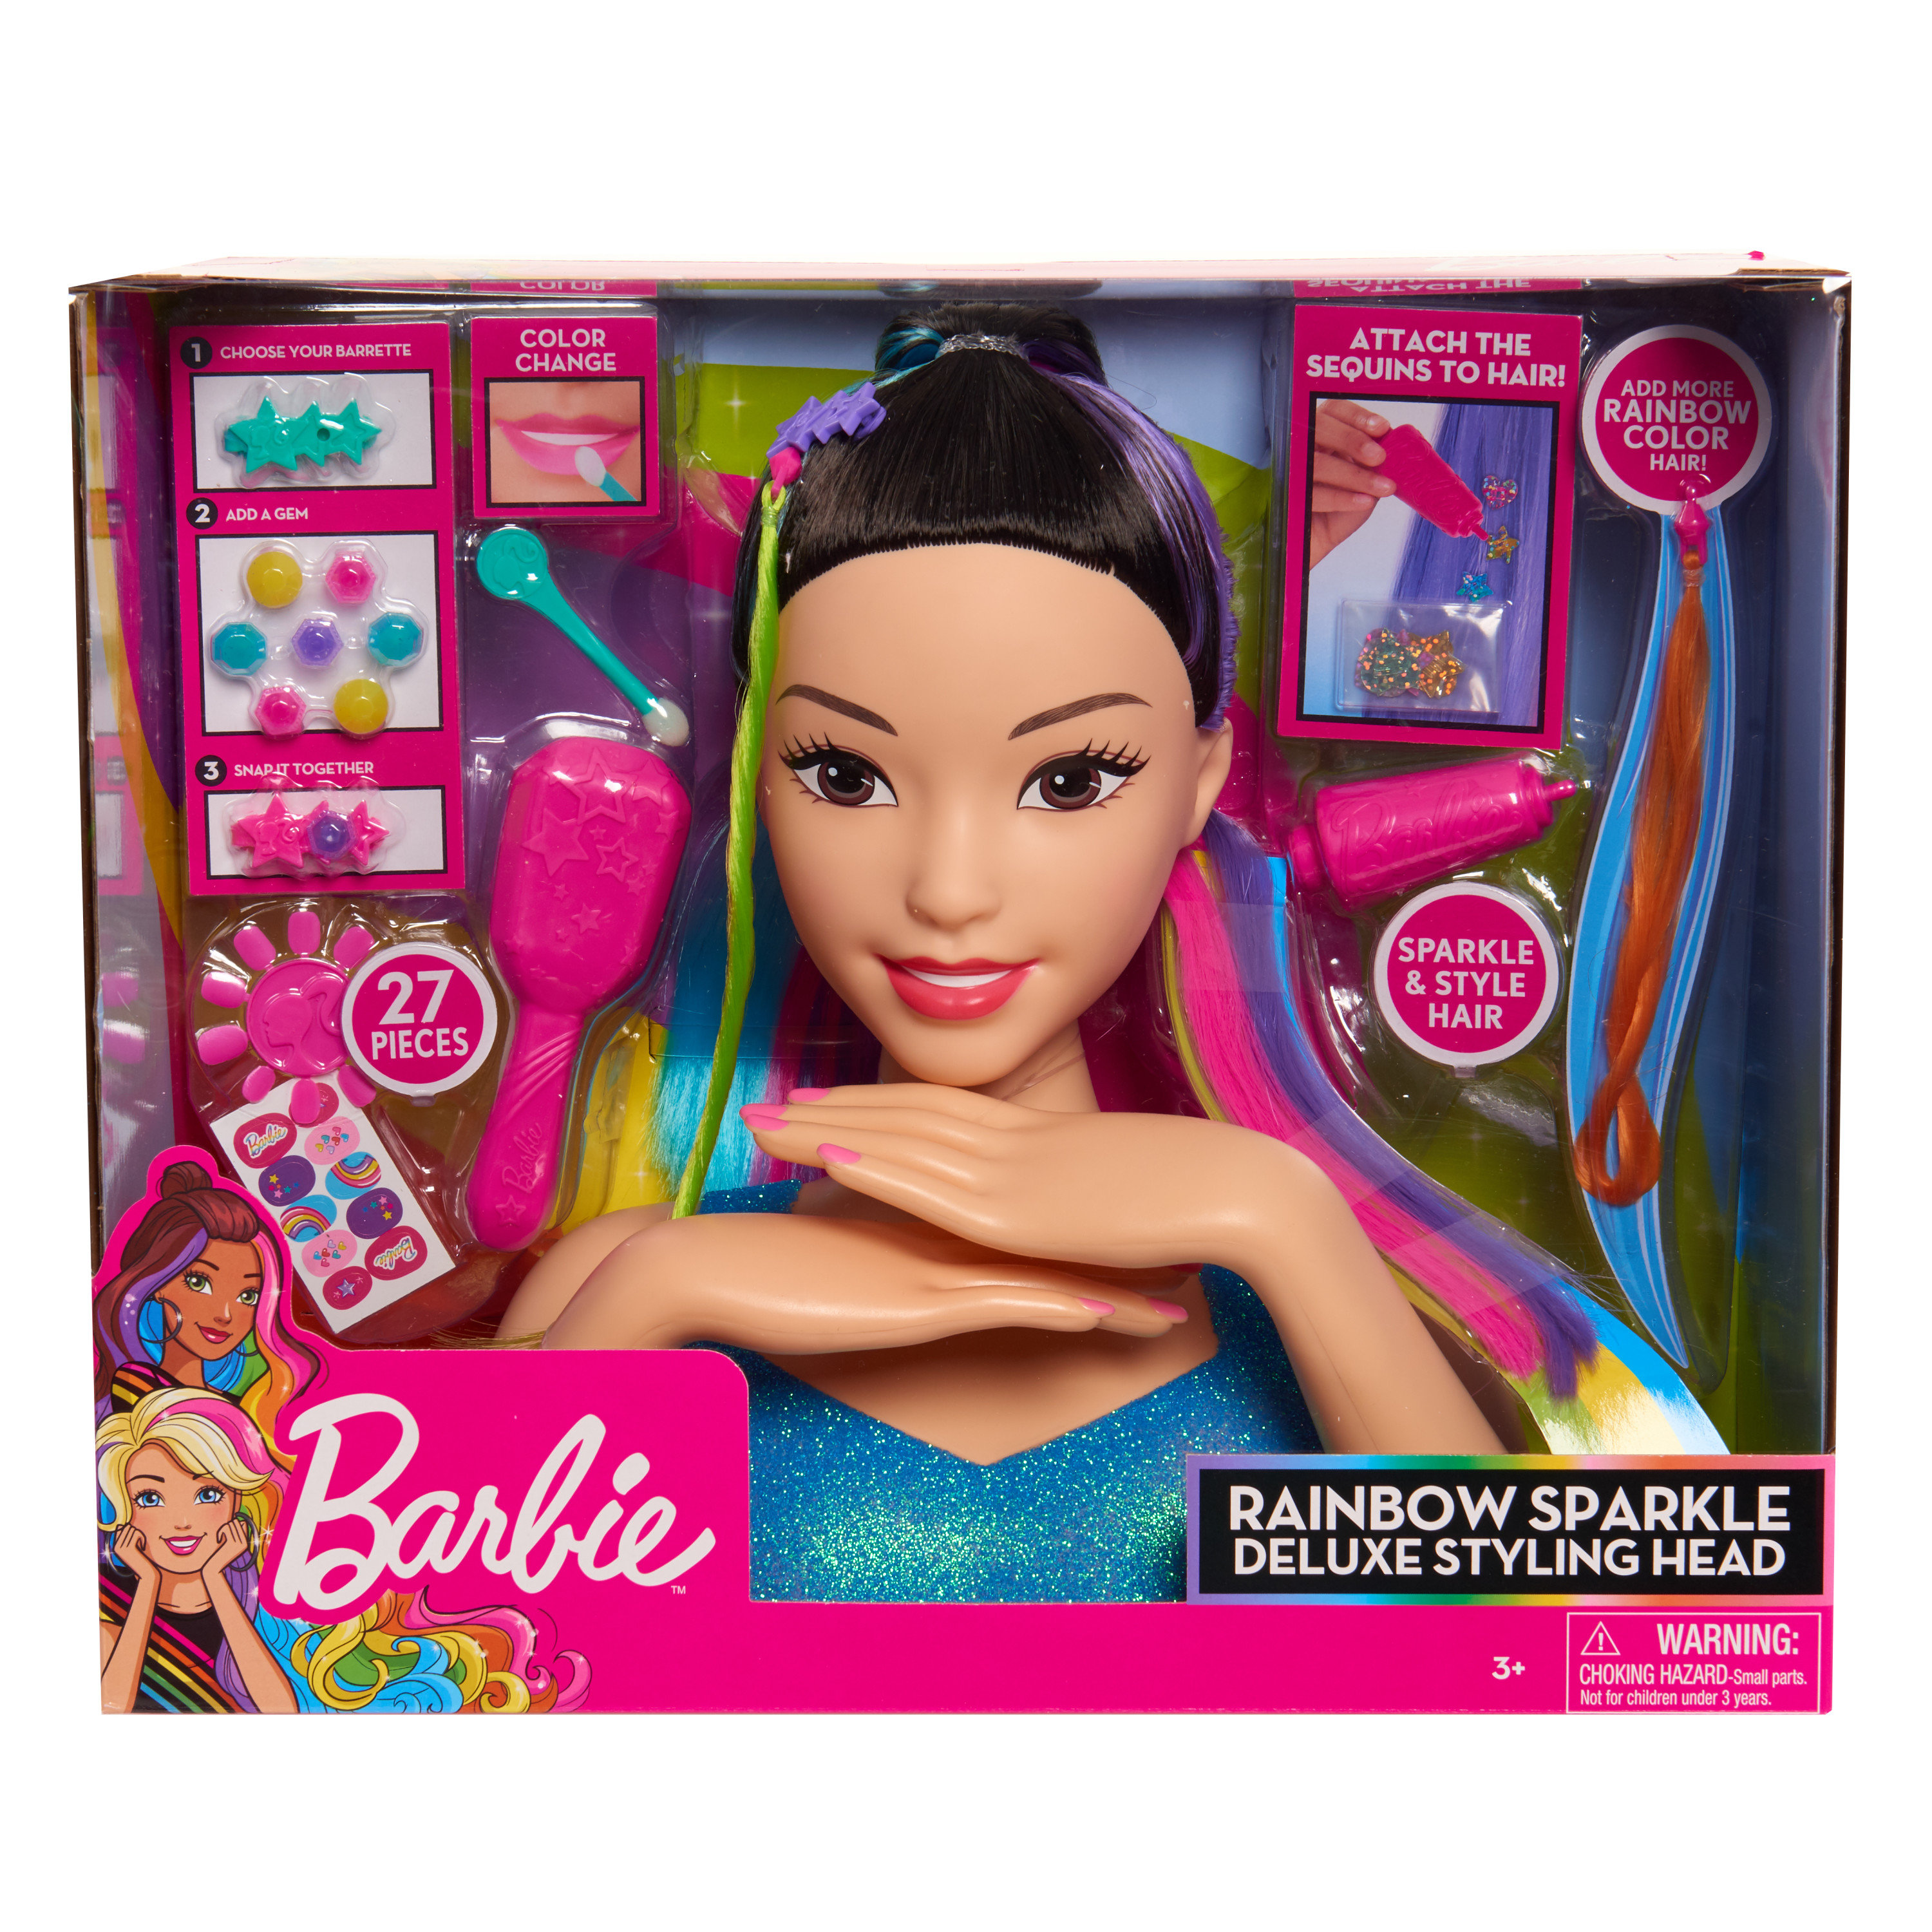 Awesome Rainbow Sparkle Hair Barbie Styling Head wallpapers to download for free greenvirals